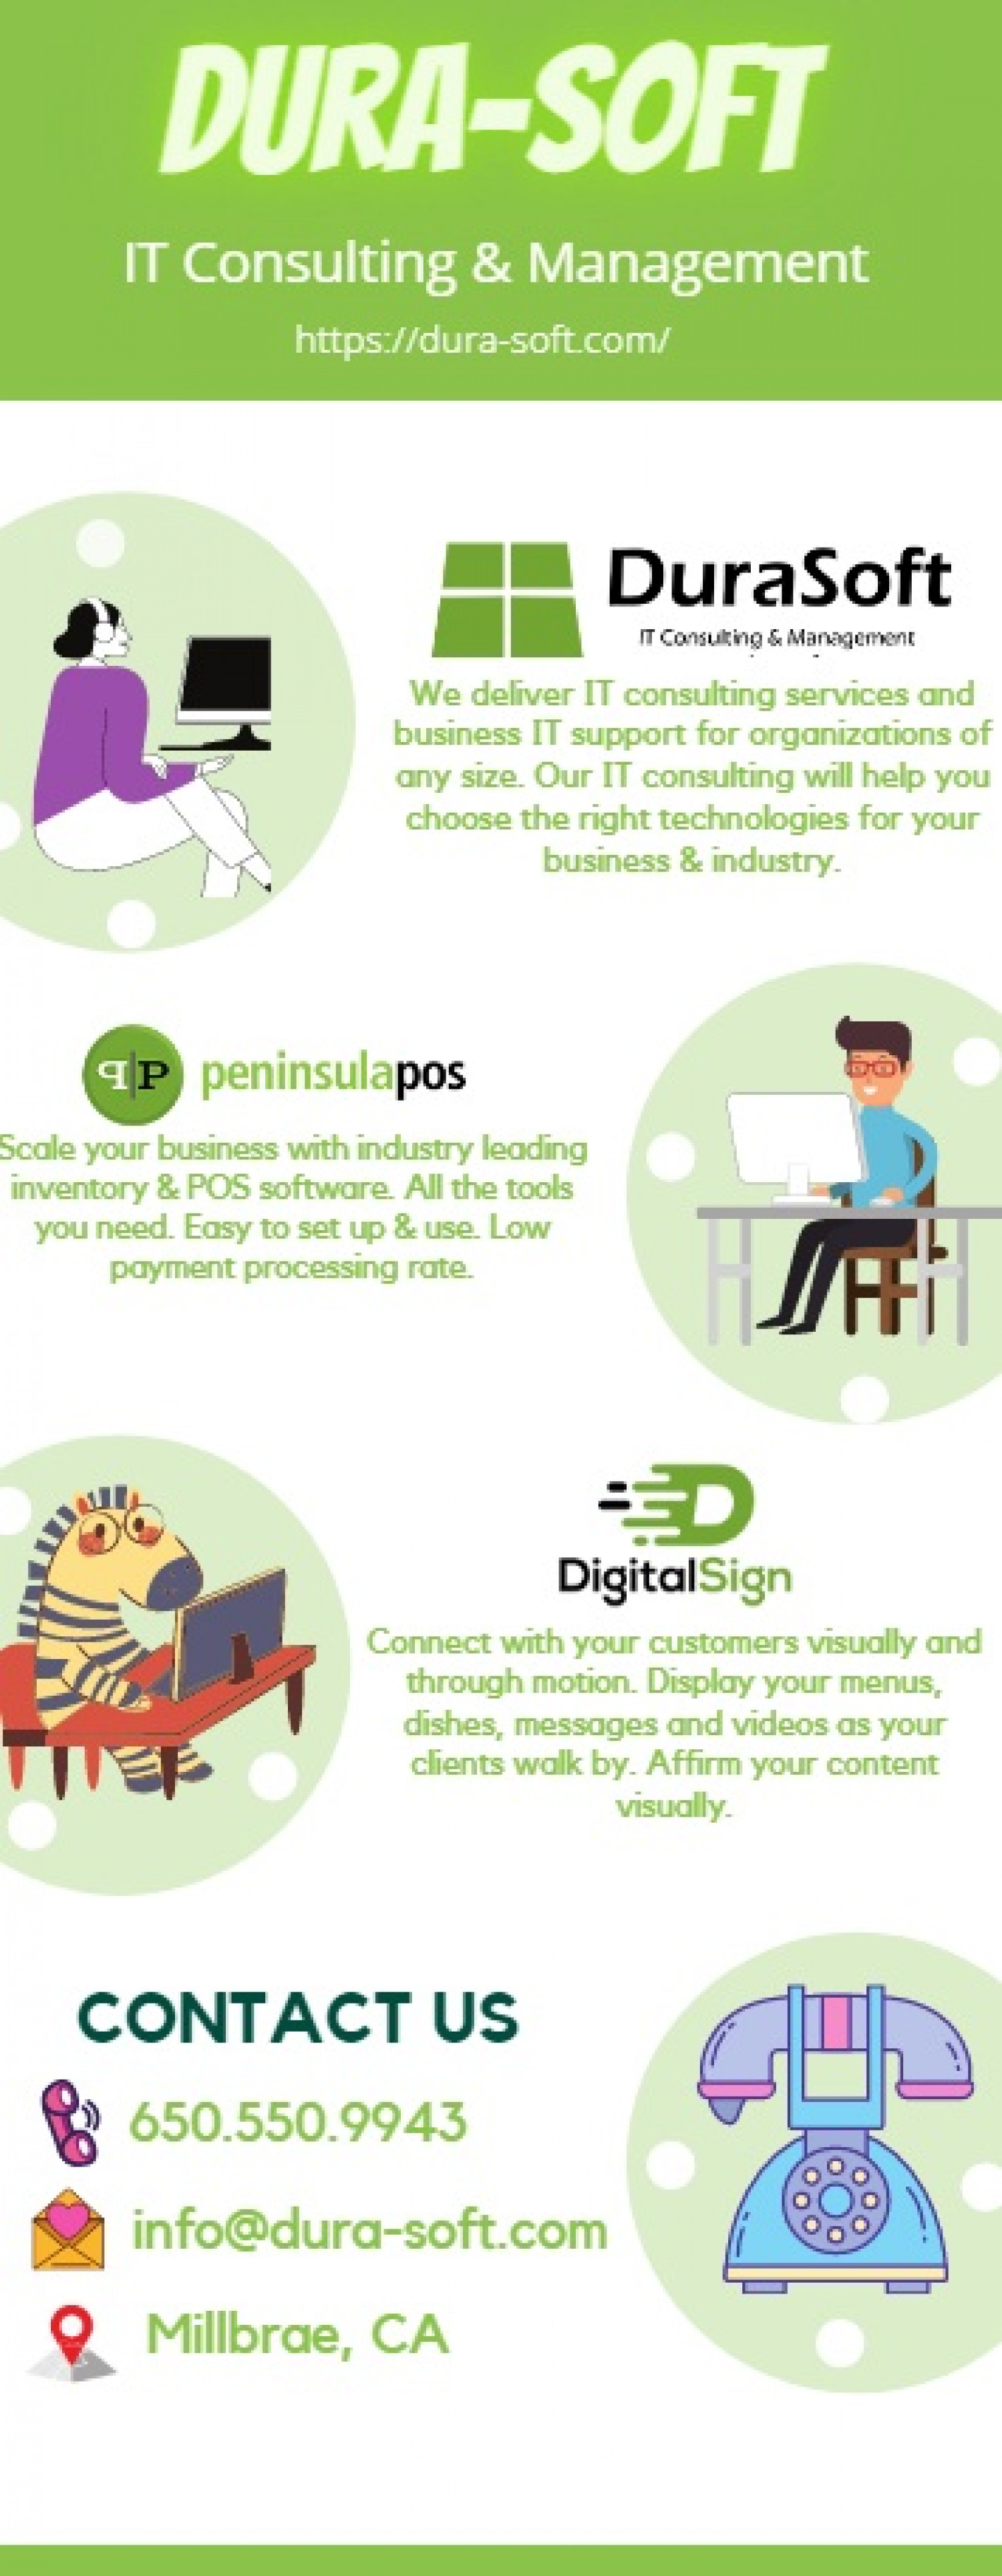 Best digital signage solutions in Millbrae, CA, USA Infographic